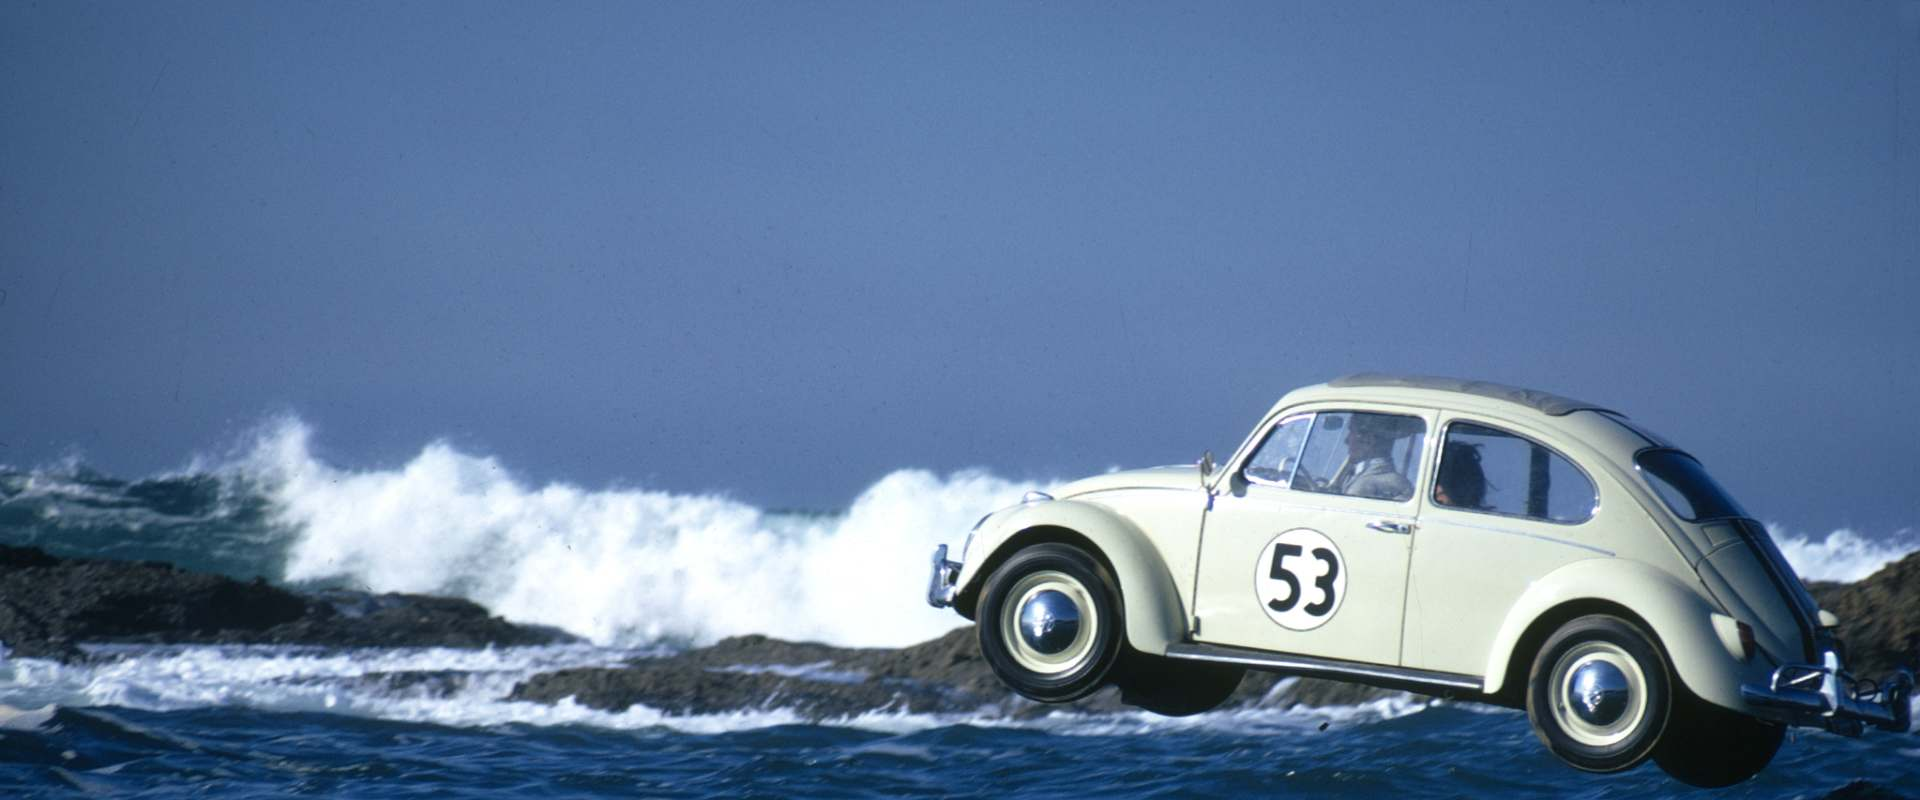 Herbie Rides Again background 1